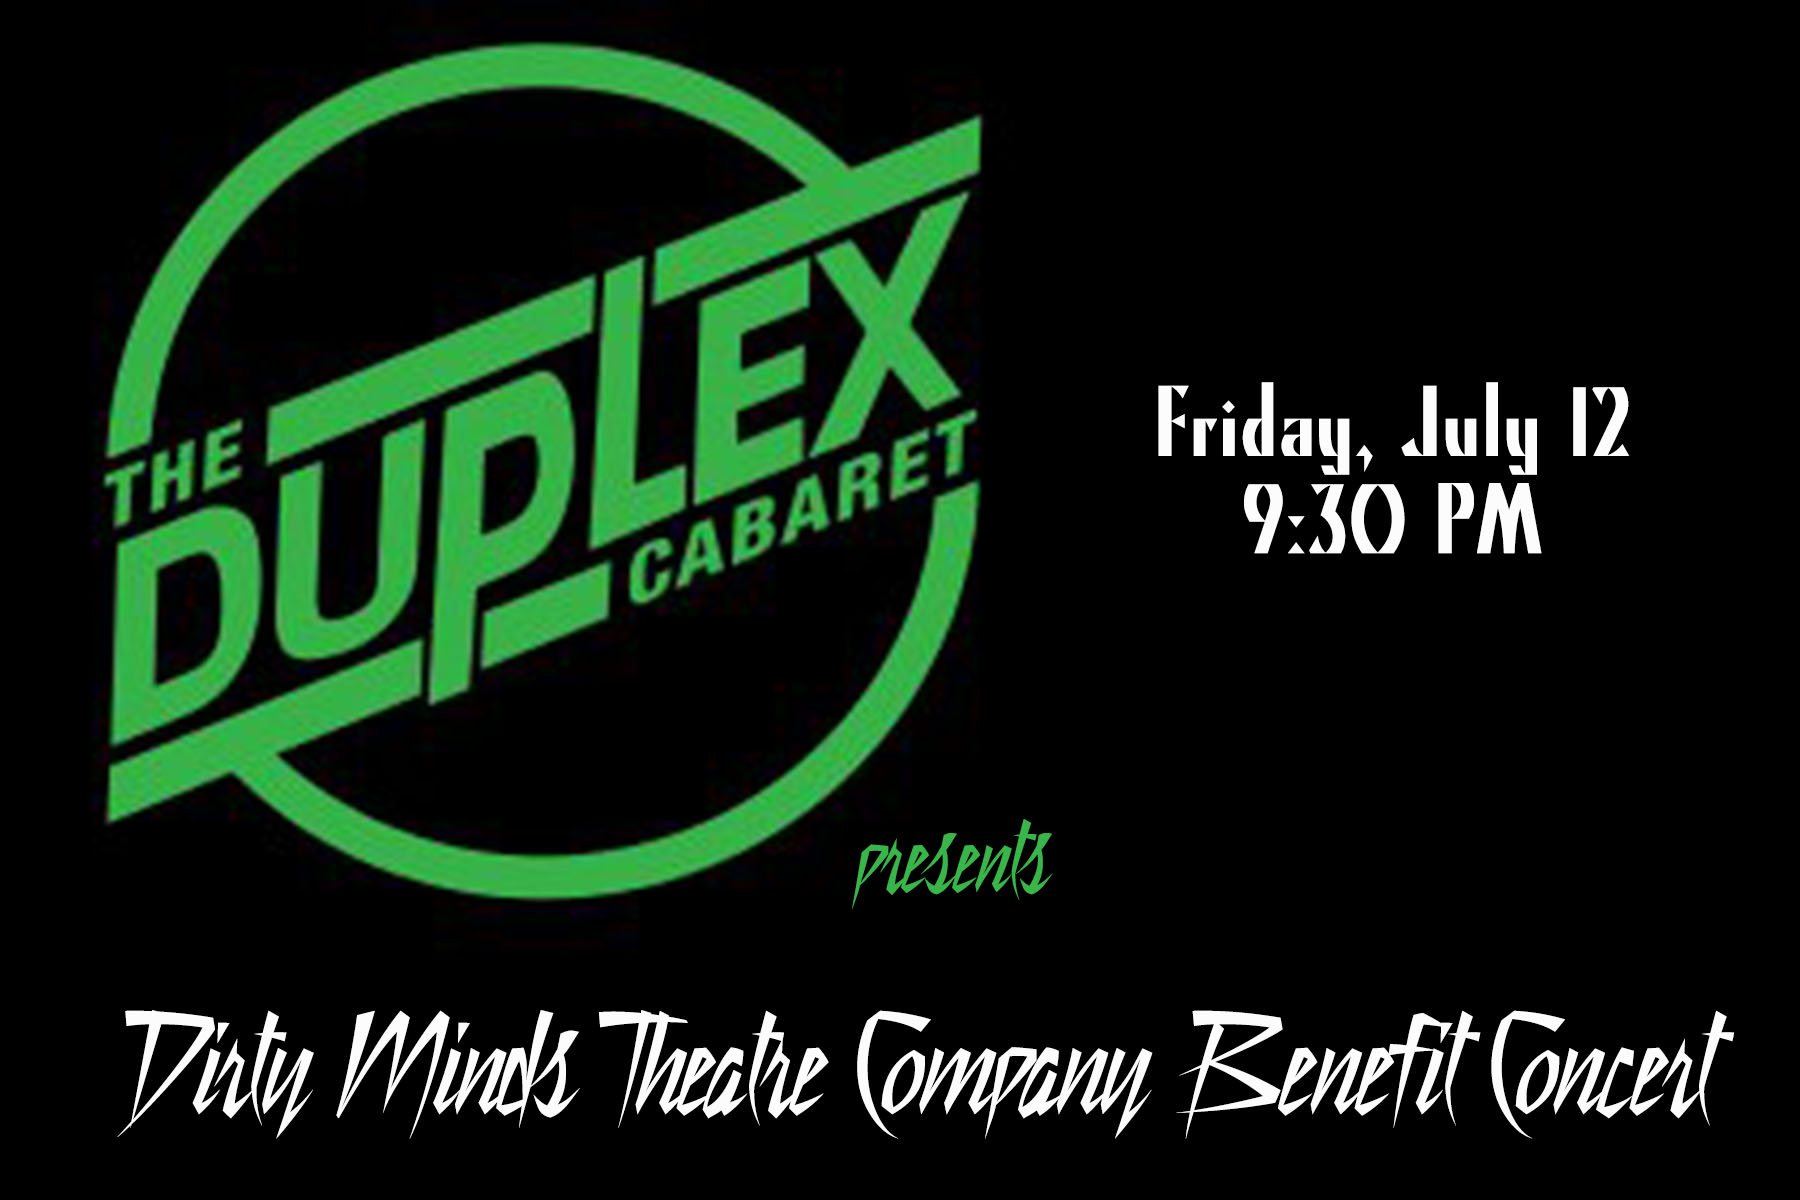 Come to our Benefit Concert! - 🎵What good is sitting alone in your room?! 🎙Come hear OUR music play! 🎶 Announcing 🥁🥁🥁 Dirty Minds Theatre Company at The Duplex! Come join us on July 12th at 9:30PM for our Benefit Concert! Help us fund our production of 🎭HEAD OVER HEELS🎭!! We have a VERY exciting line up that we will be announcing over the next couple weeks. $25 tickets online and $30 at the door! Come unleash your Dirty Minds!💋 And your wallets! 💸http://www.purplepass.com/dm0712